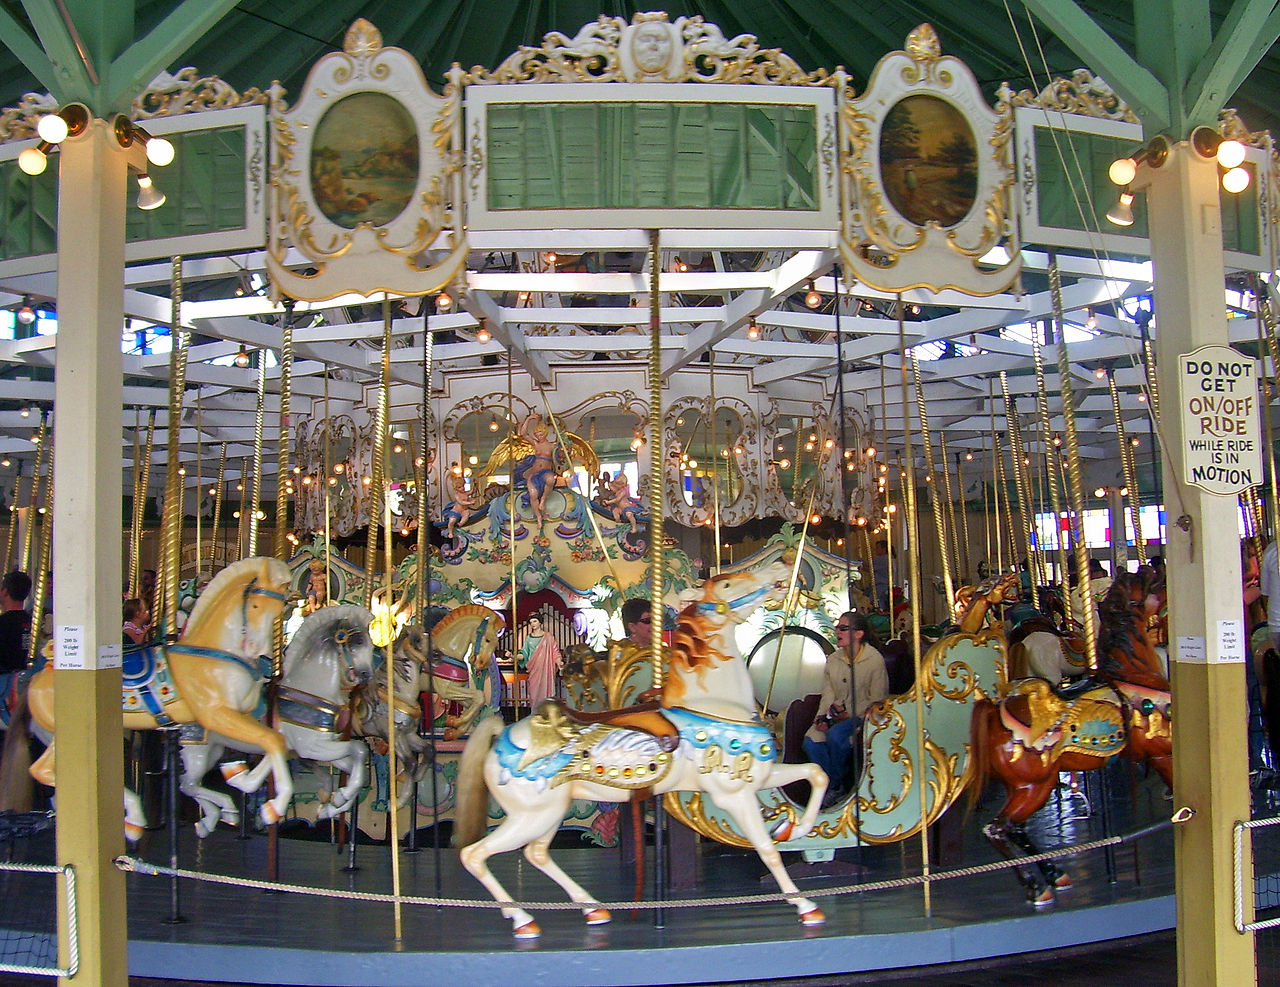 The carousel is 50 feet in diameter and contains 61 horses, one camel, to coaches and two double chariots.